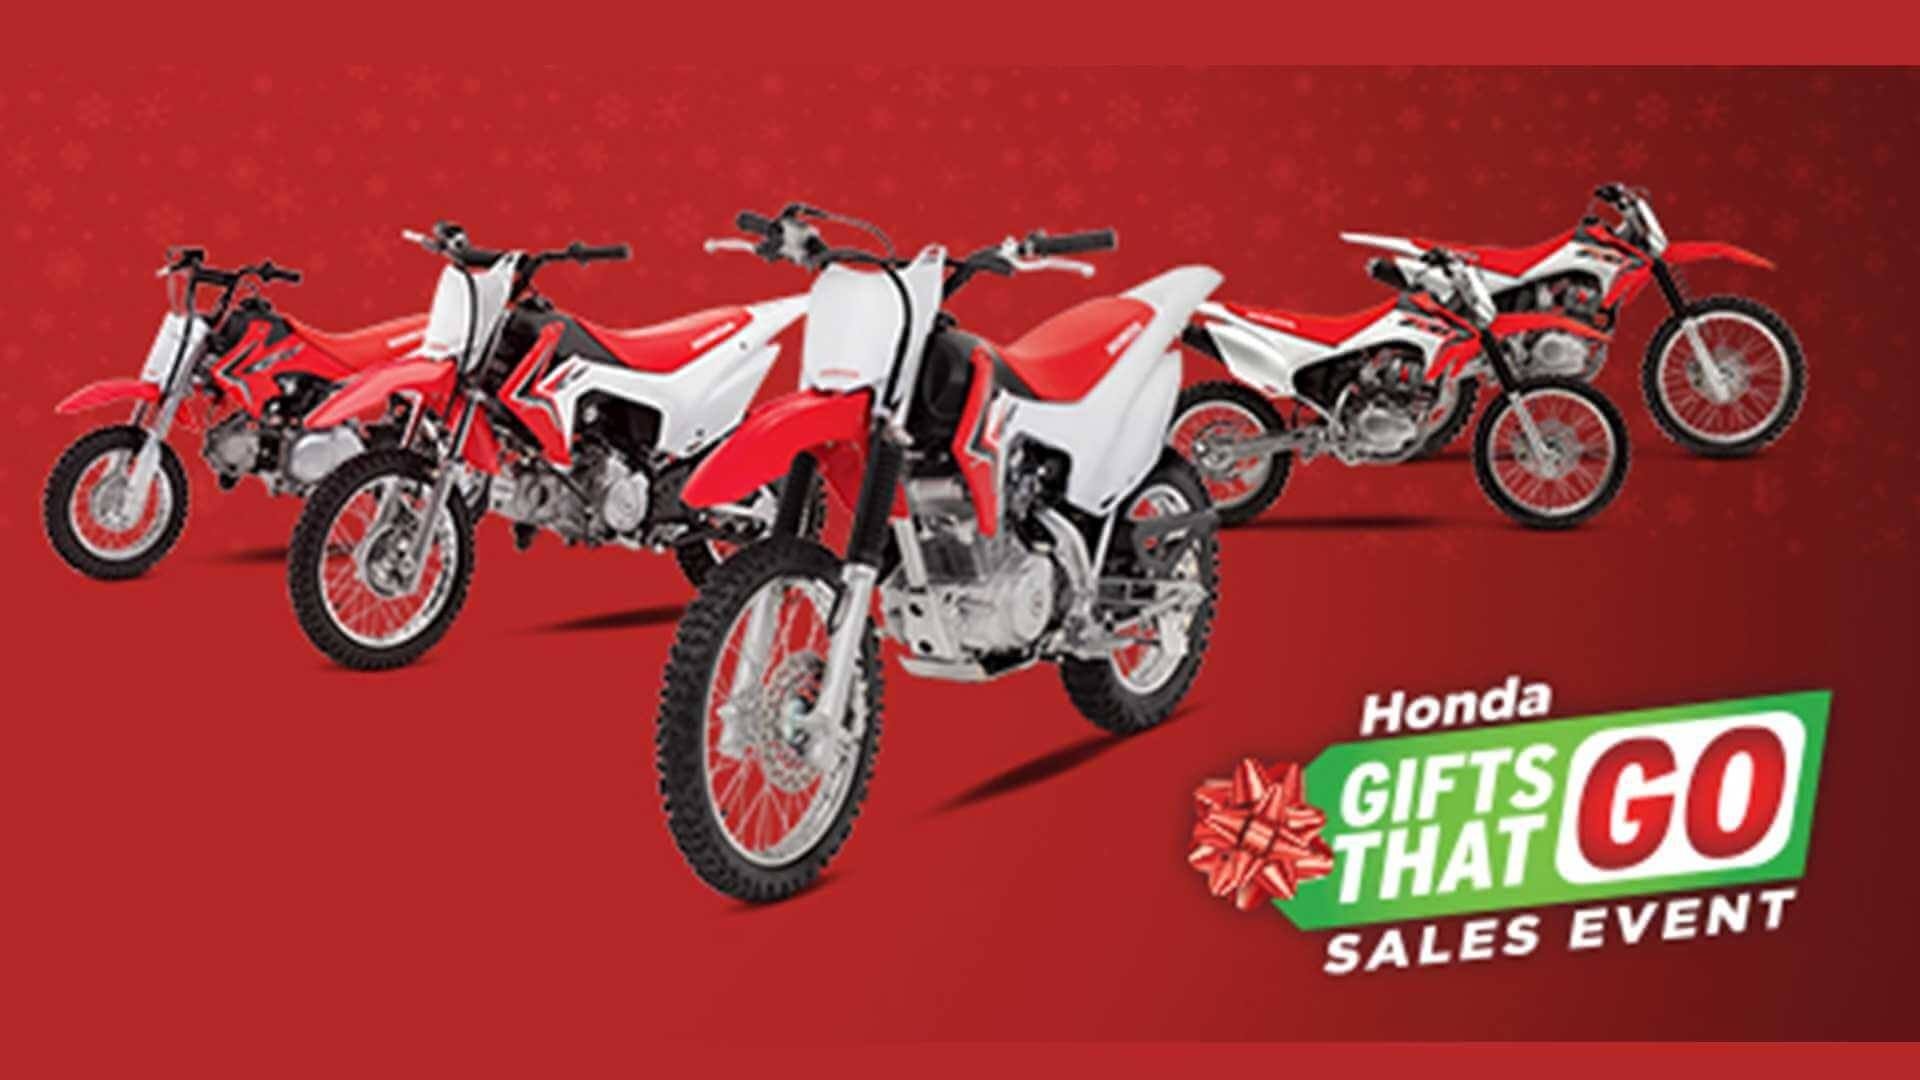 Honda Gifts That Go Sales Event